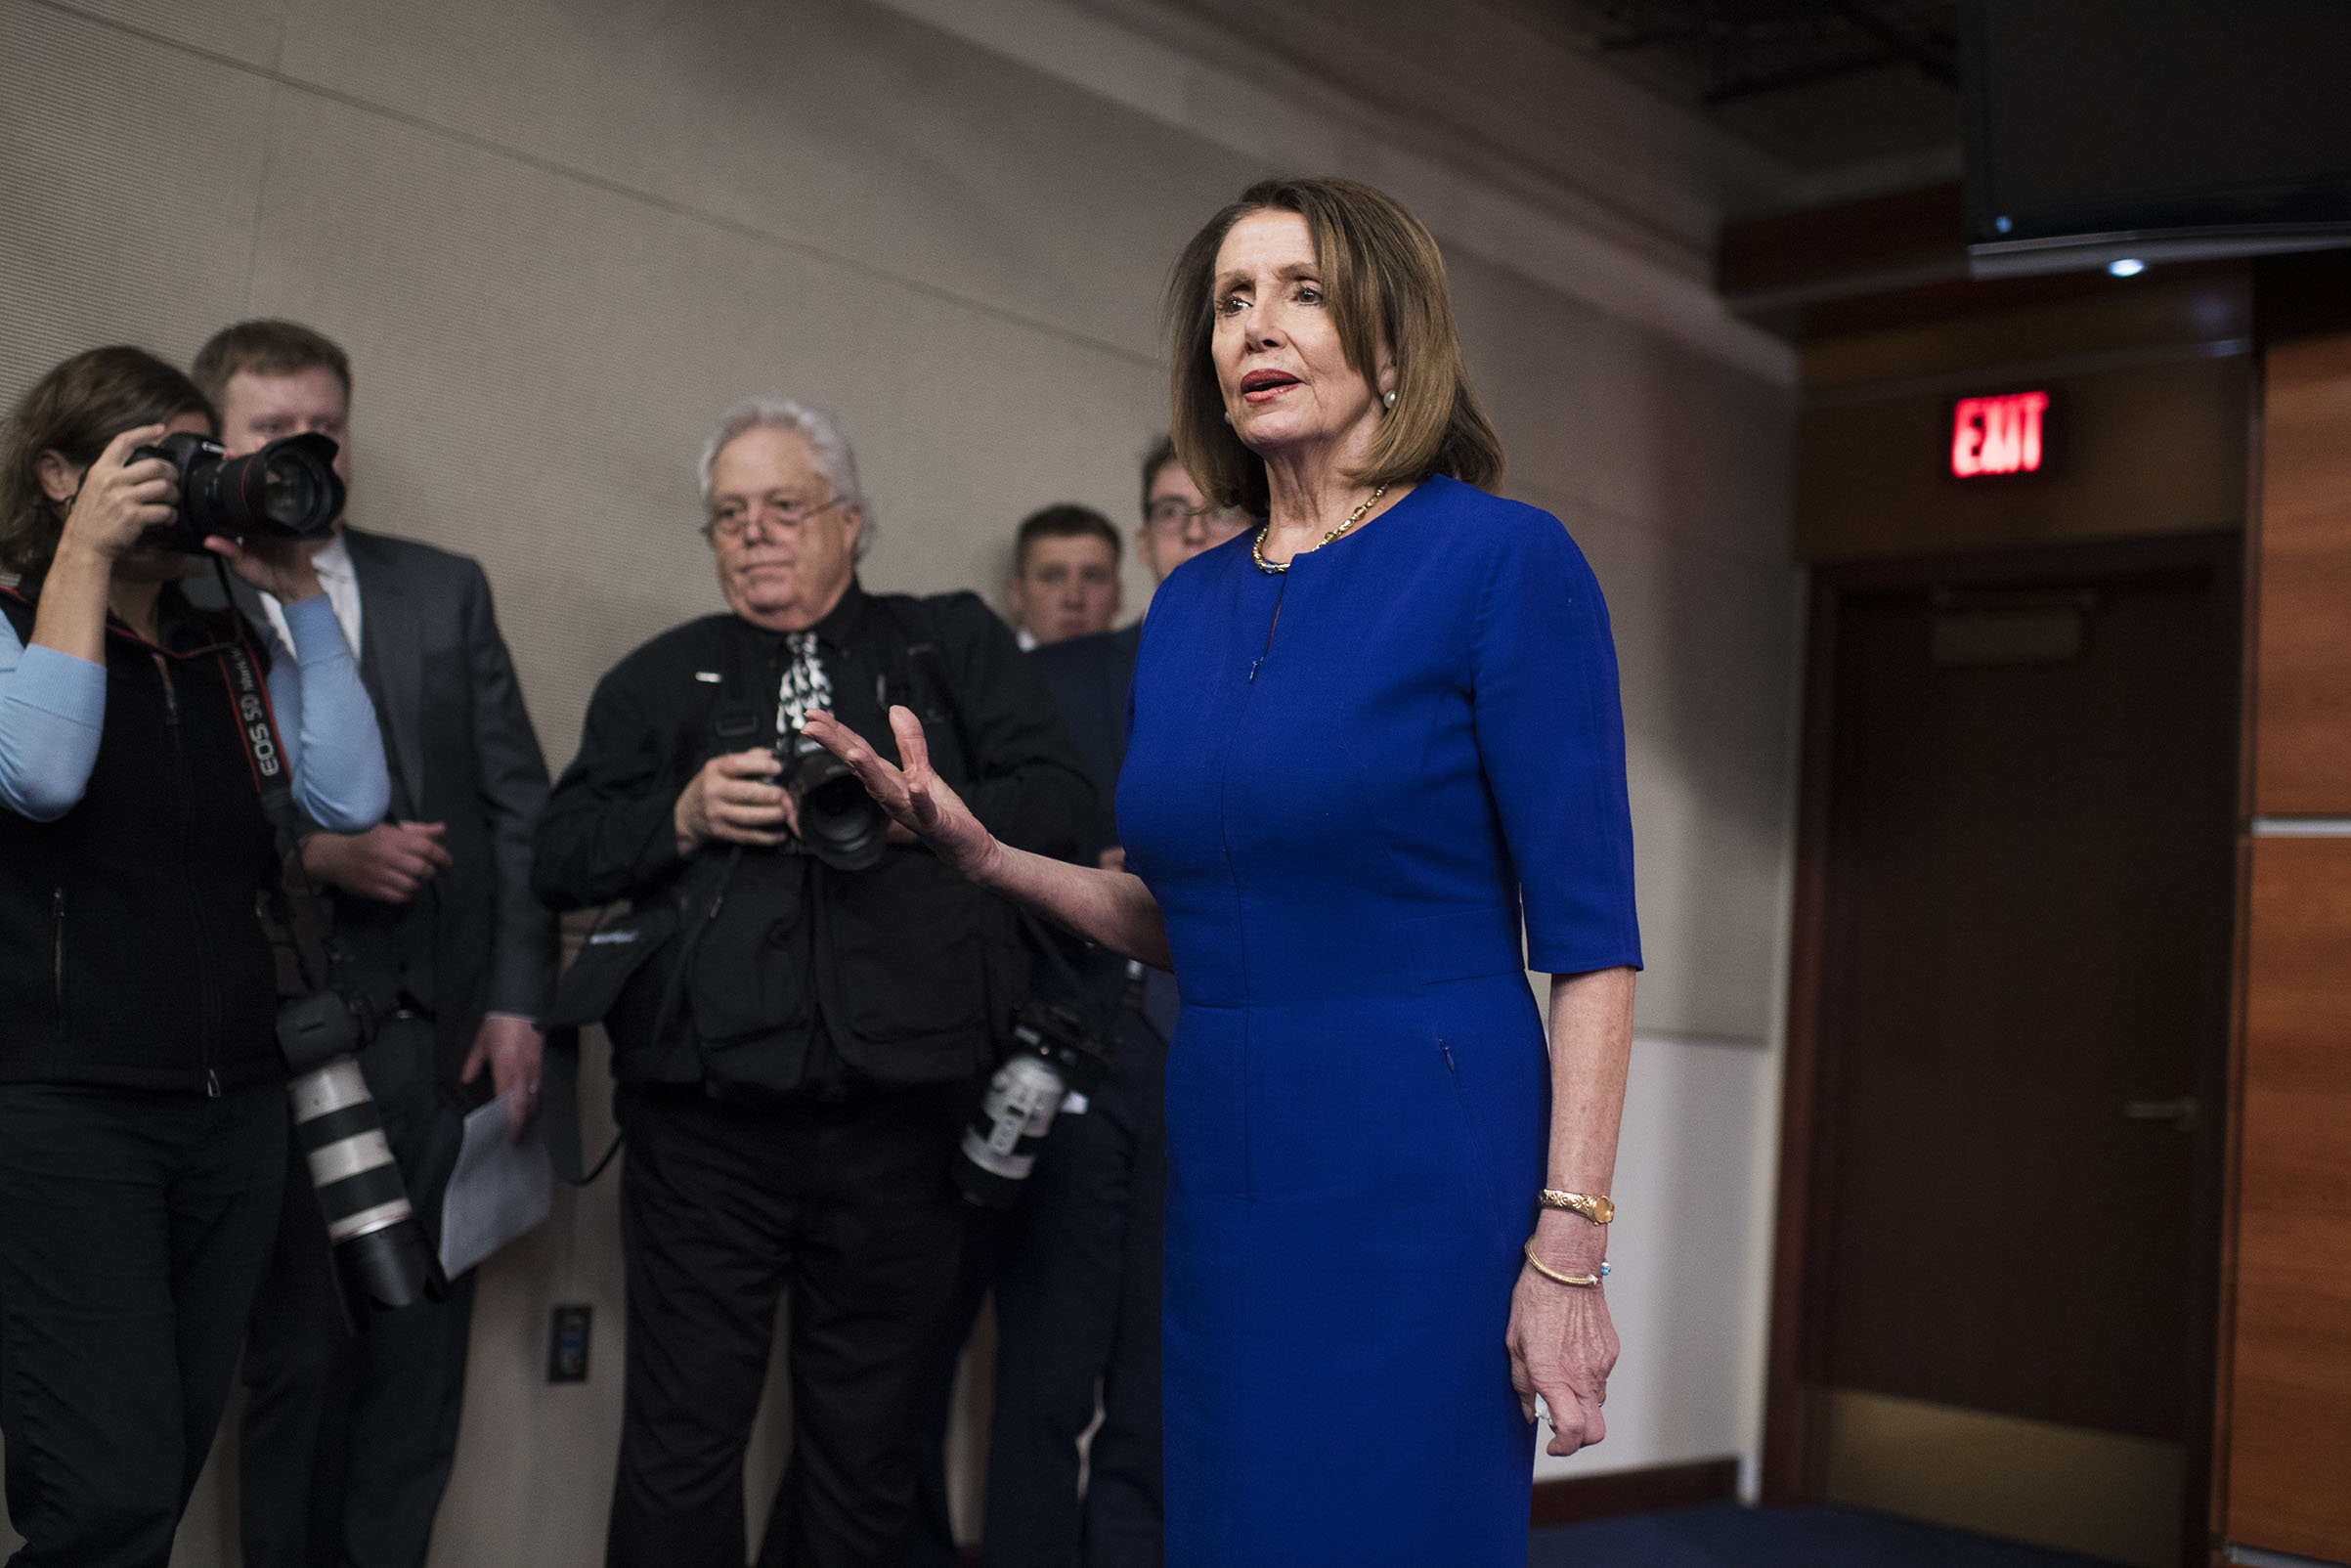 Pelosi's reluctance to impeach leaves the decision in the hands of the voters, where it should be